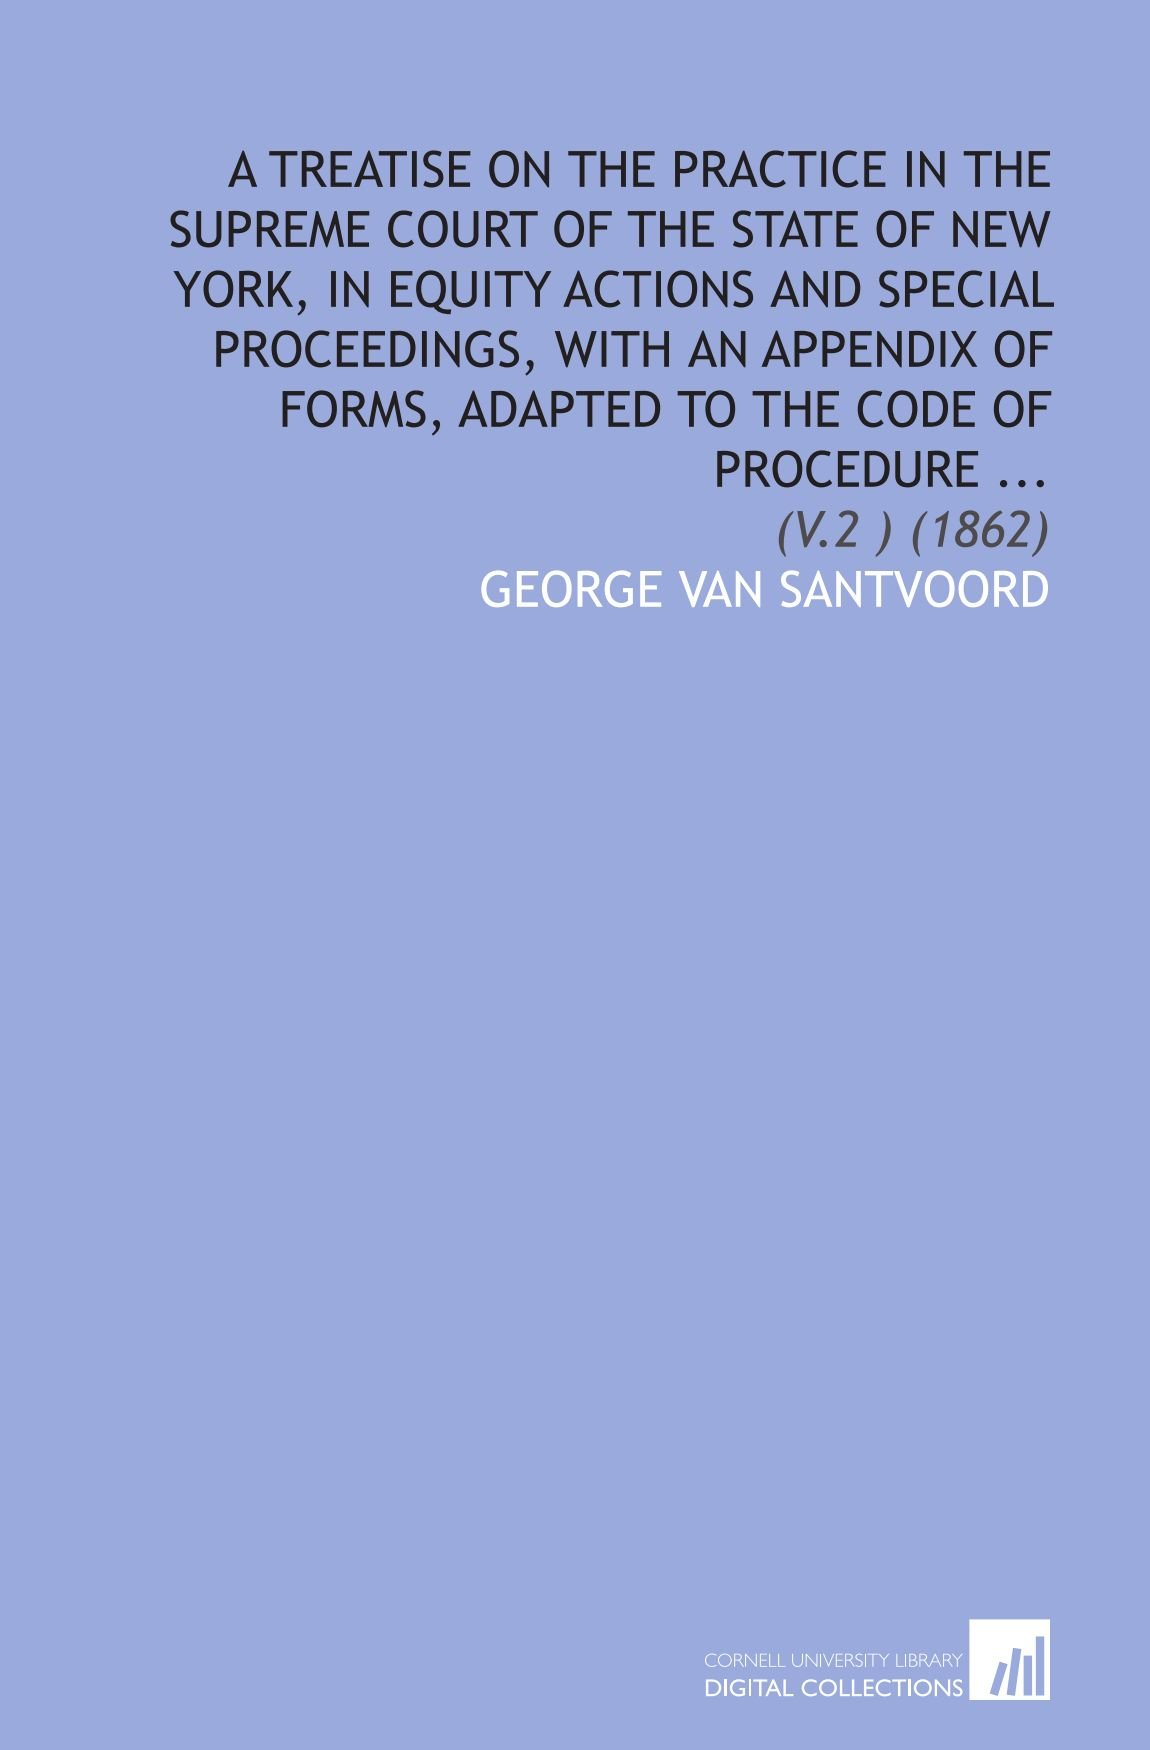 A Treatise on the Practice in the Supreme Court of the State of New York, in Equity Actions and Special Proceedings, With an Appendix of Forms, Adapted to the Code of Procedure ...: (V.2 ) (1862) pdf epub